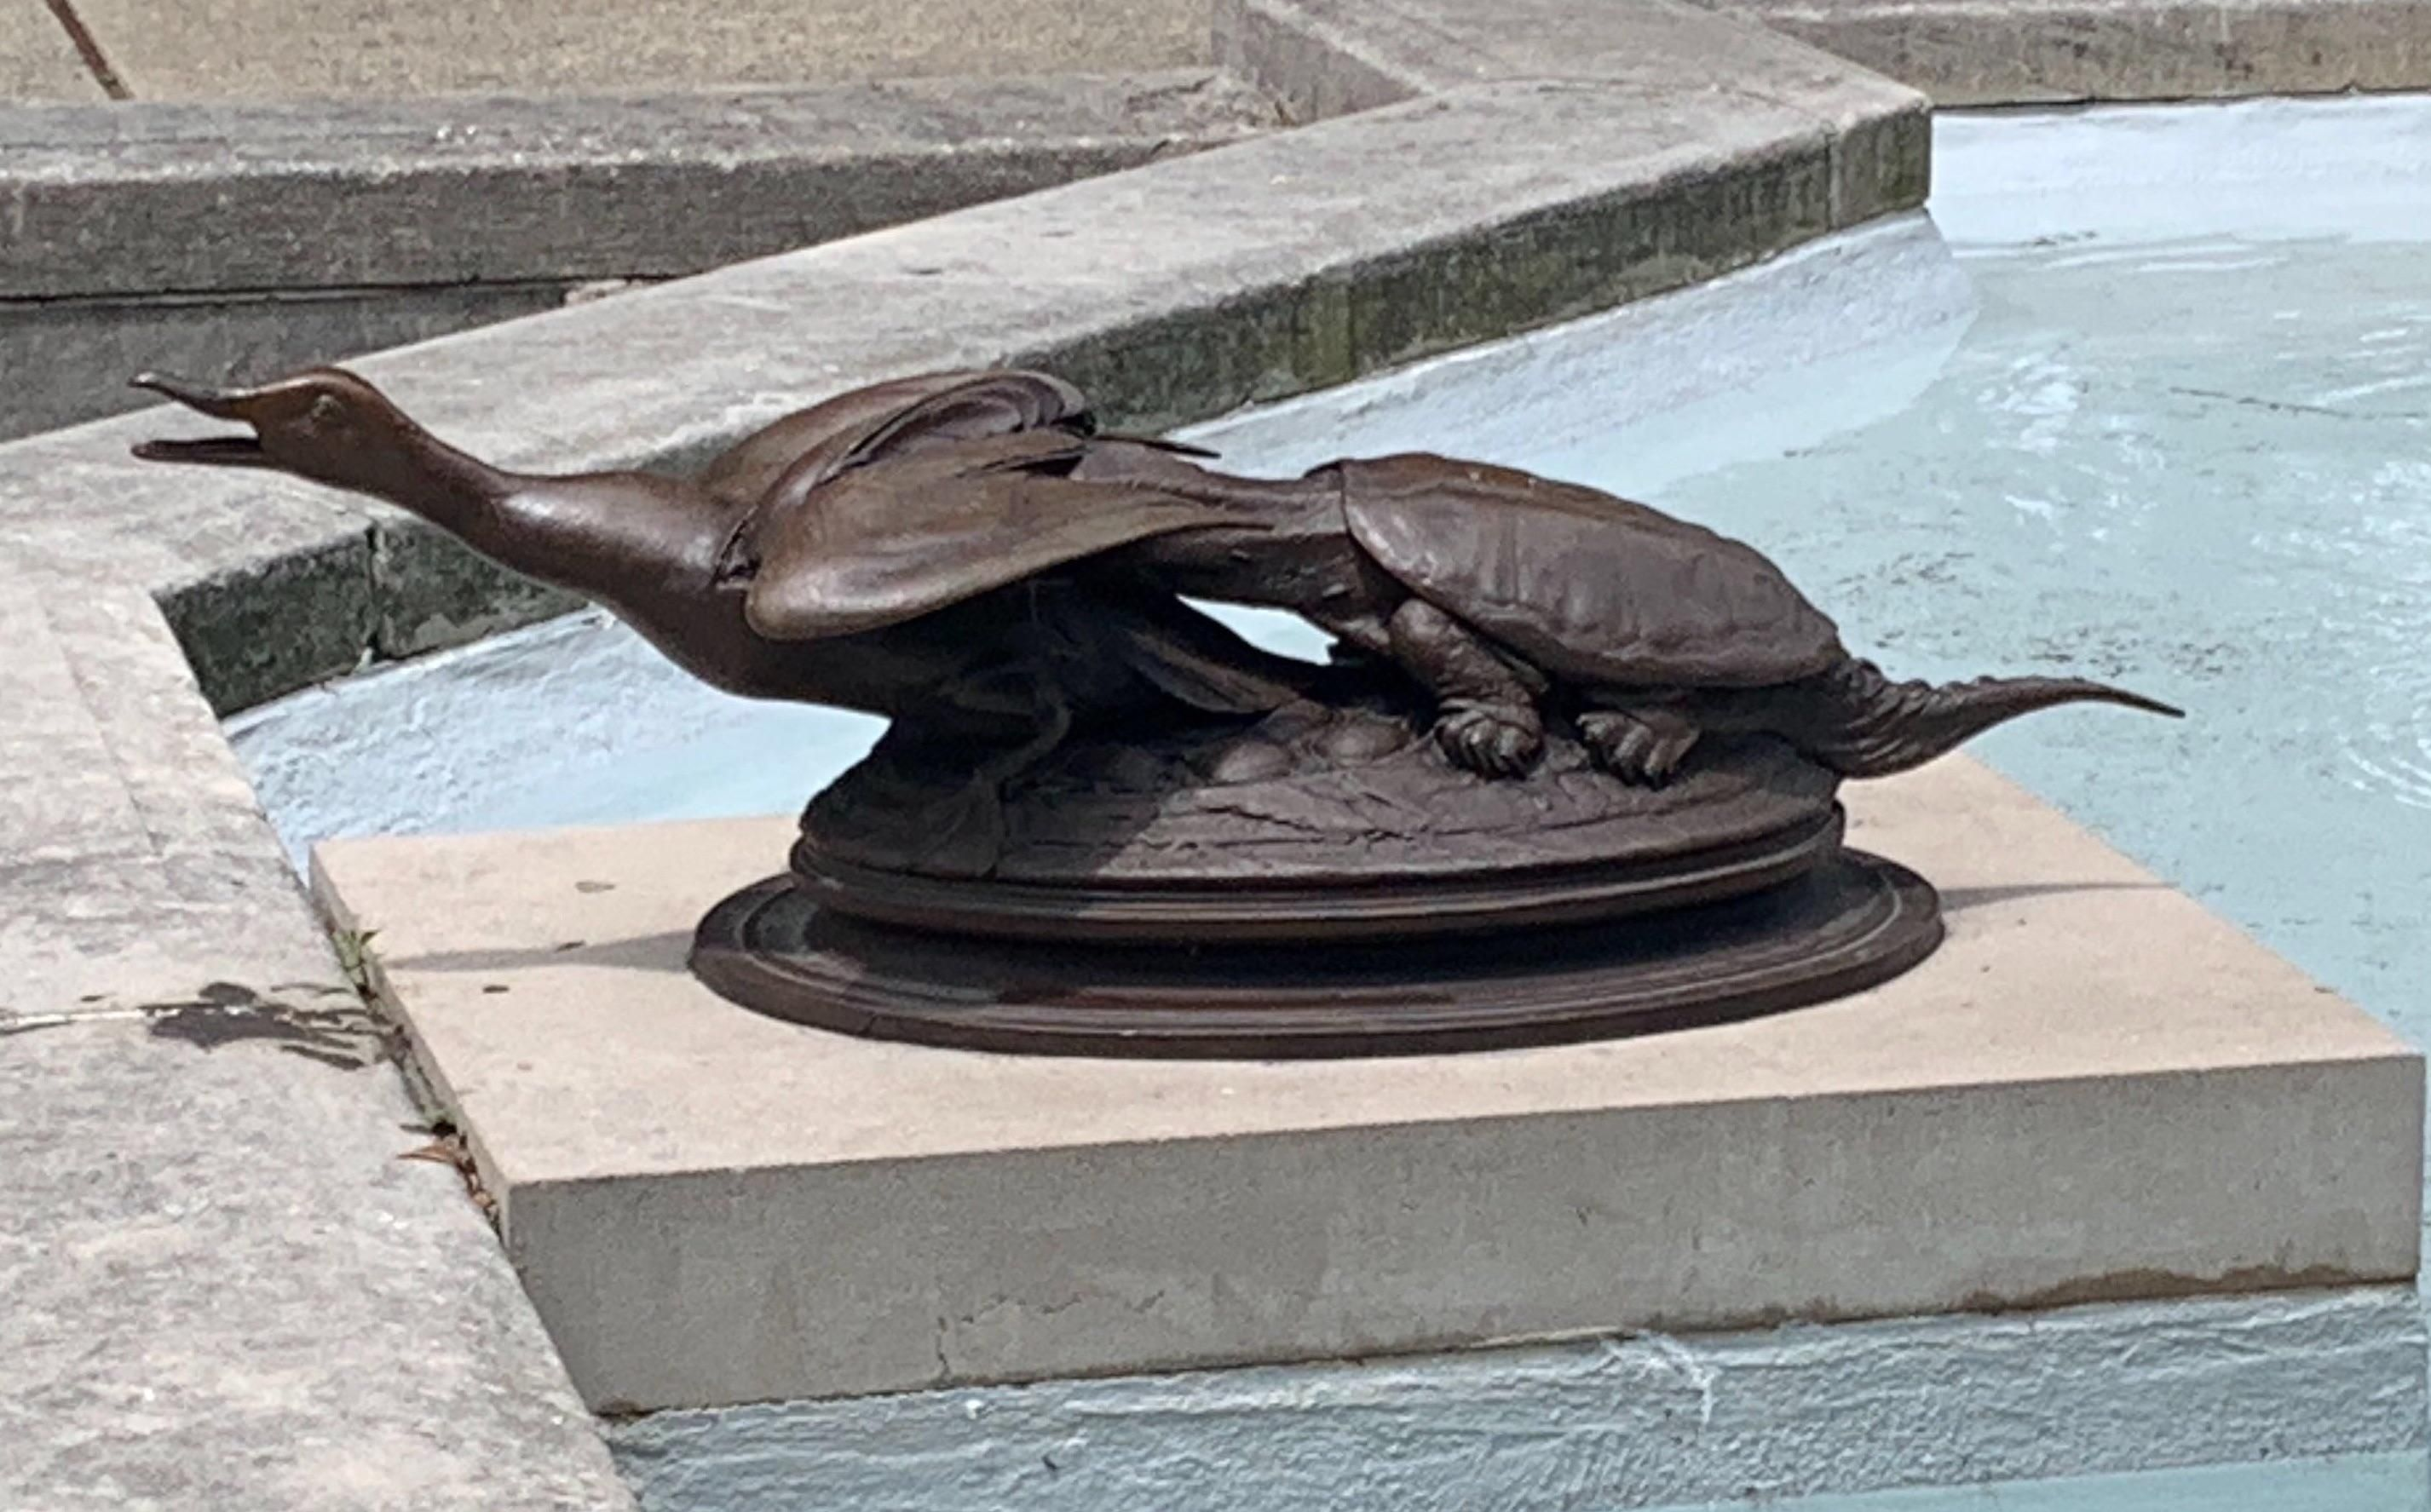 There's a statue by my friend's office that looks like a turtle eating out a duck's ass